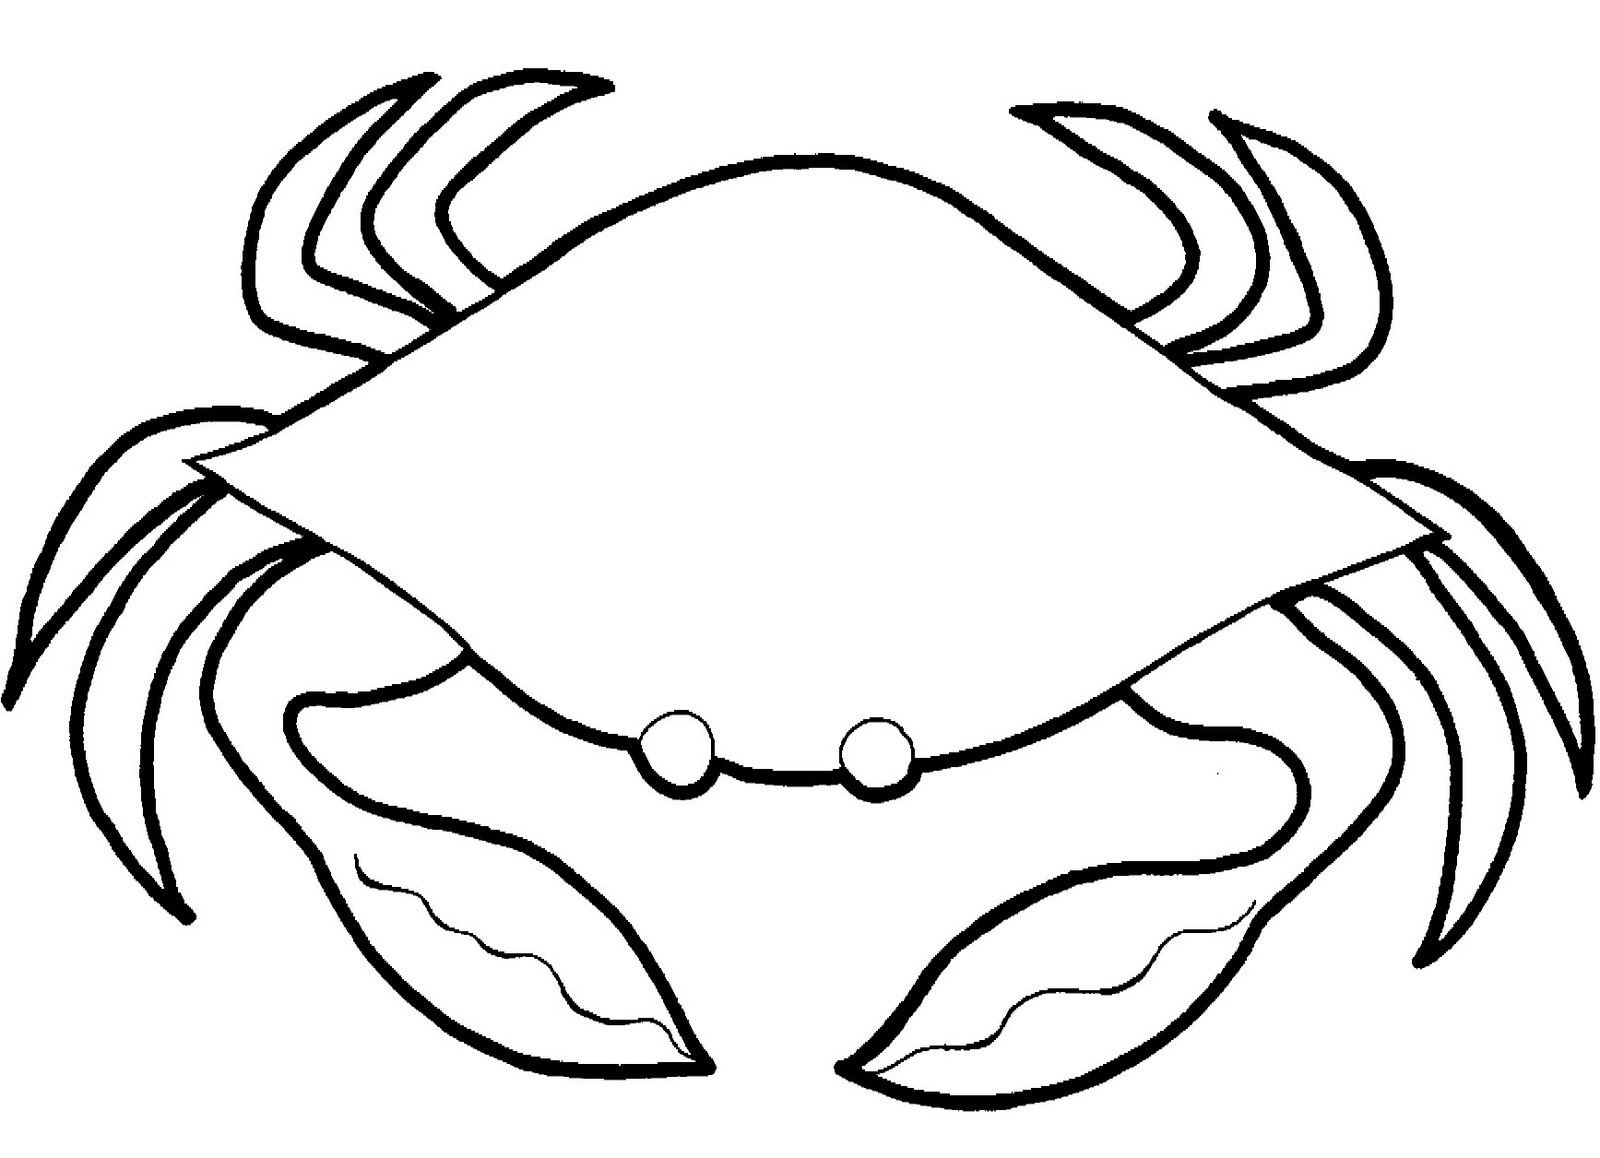 crabs coloring pages printable crab coloring pages cute looking cartoon crab crabs coloring pages